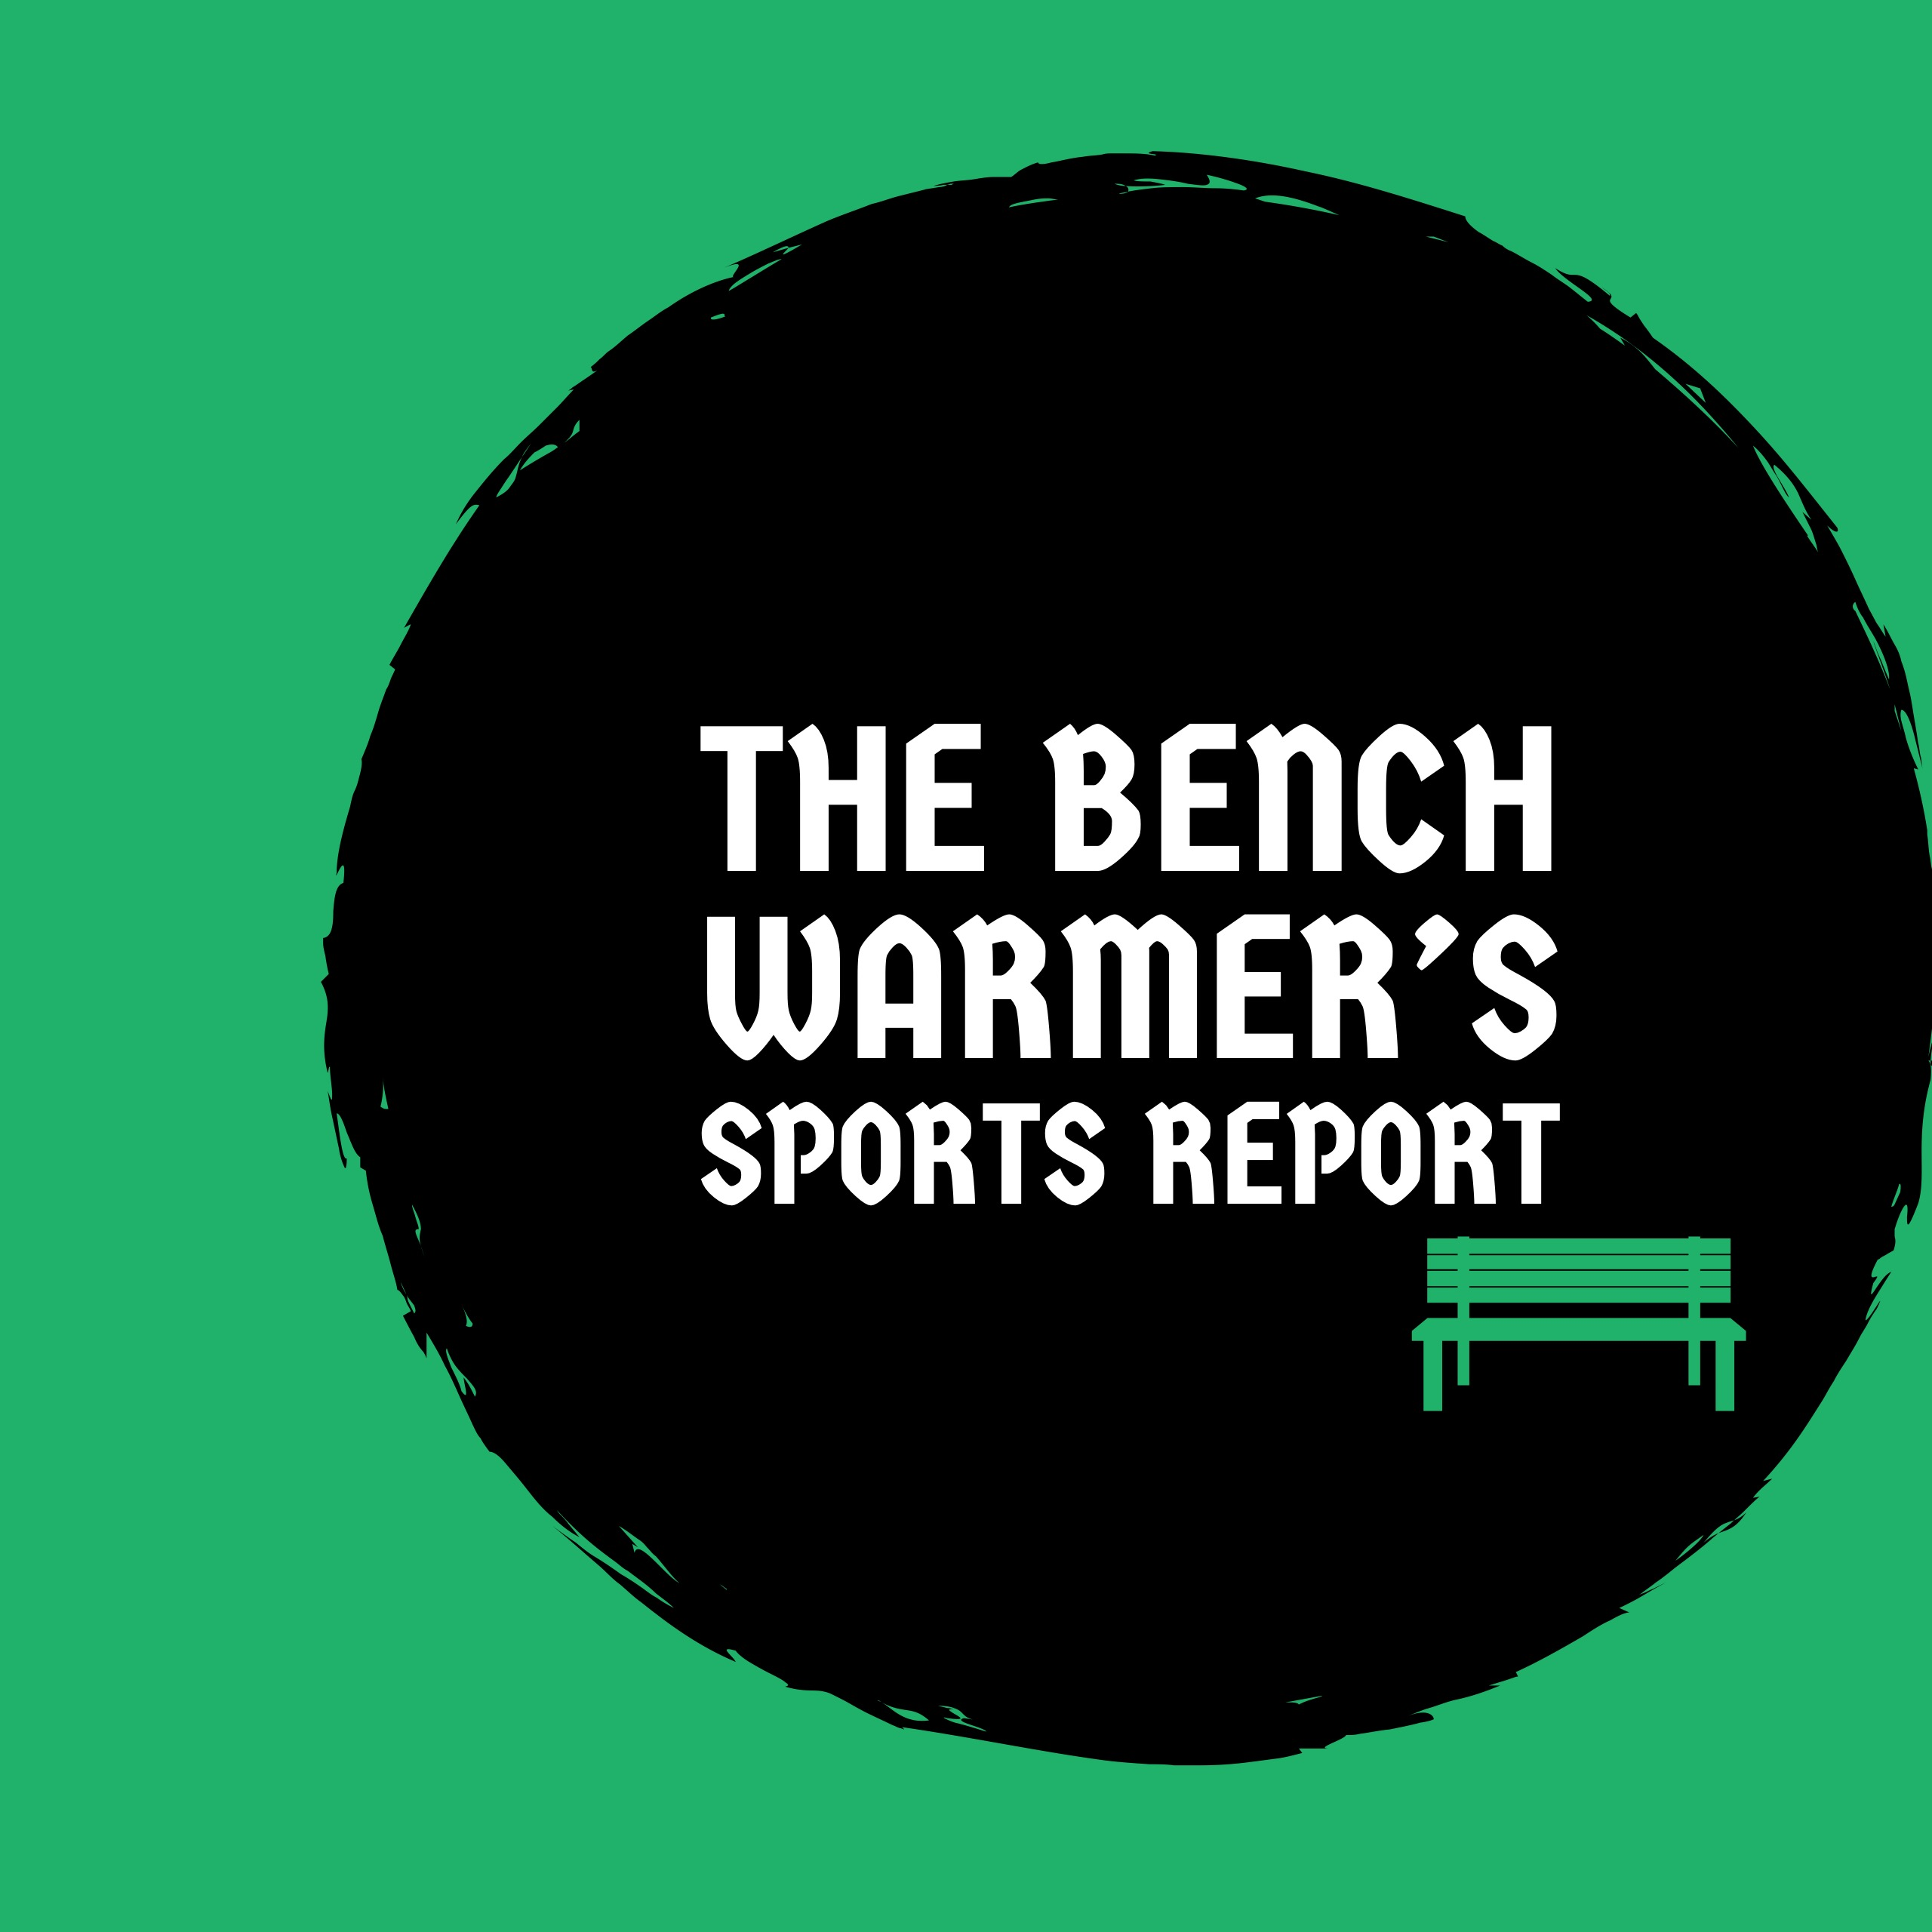 The Bench Warmer's Sports Report